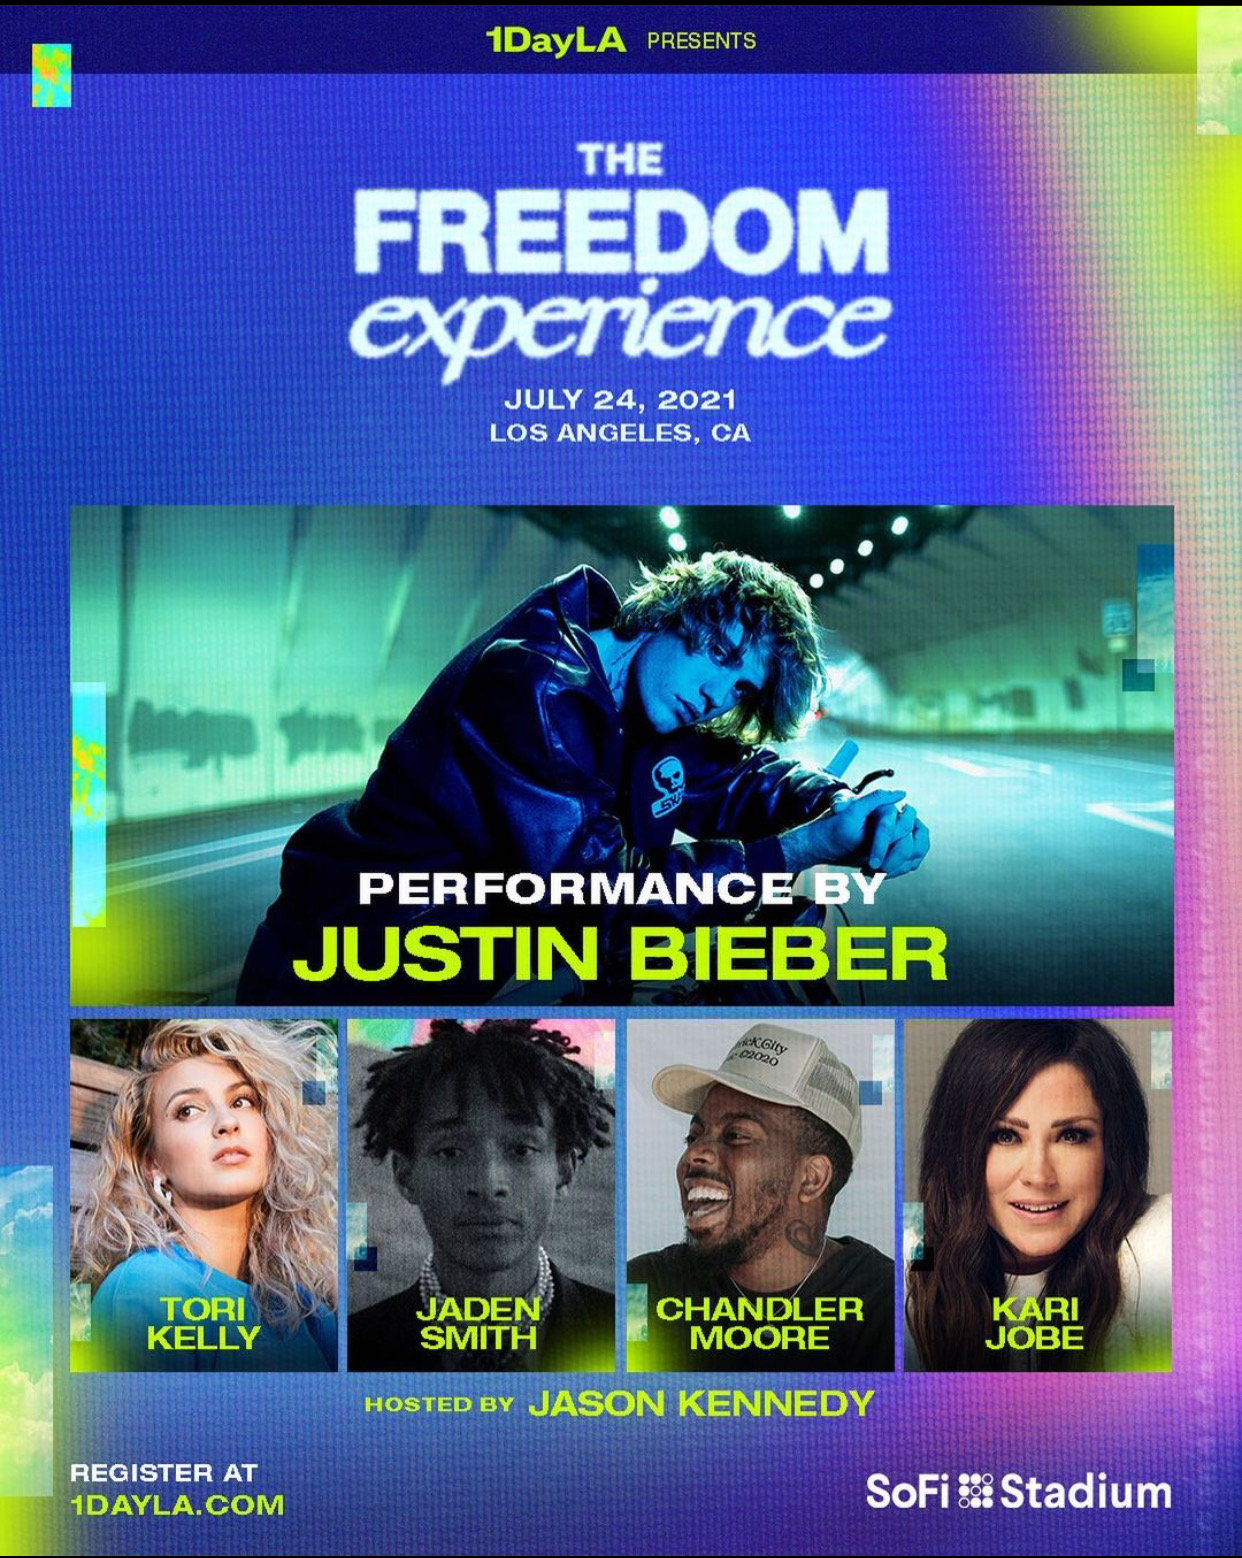 Missions.Me 1DayLA Event Kicks Off with Justin Bieber, Tori Kelly, and Chance the Rapper to Appear in Closing Concert